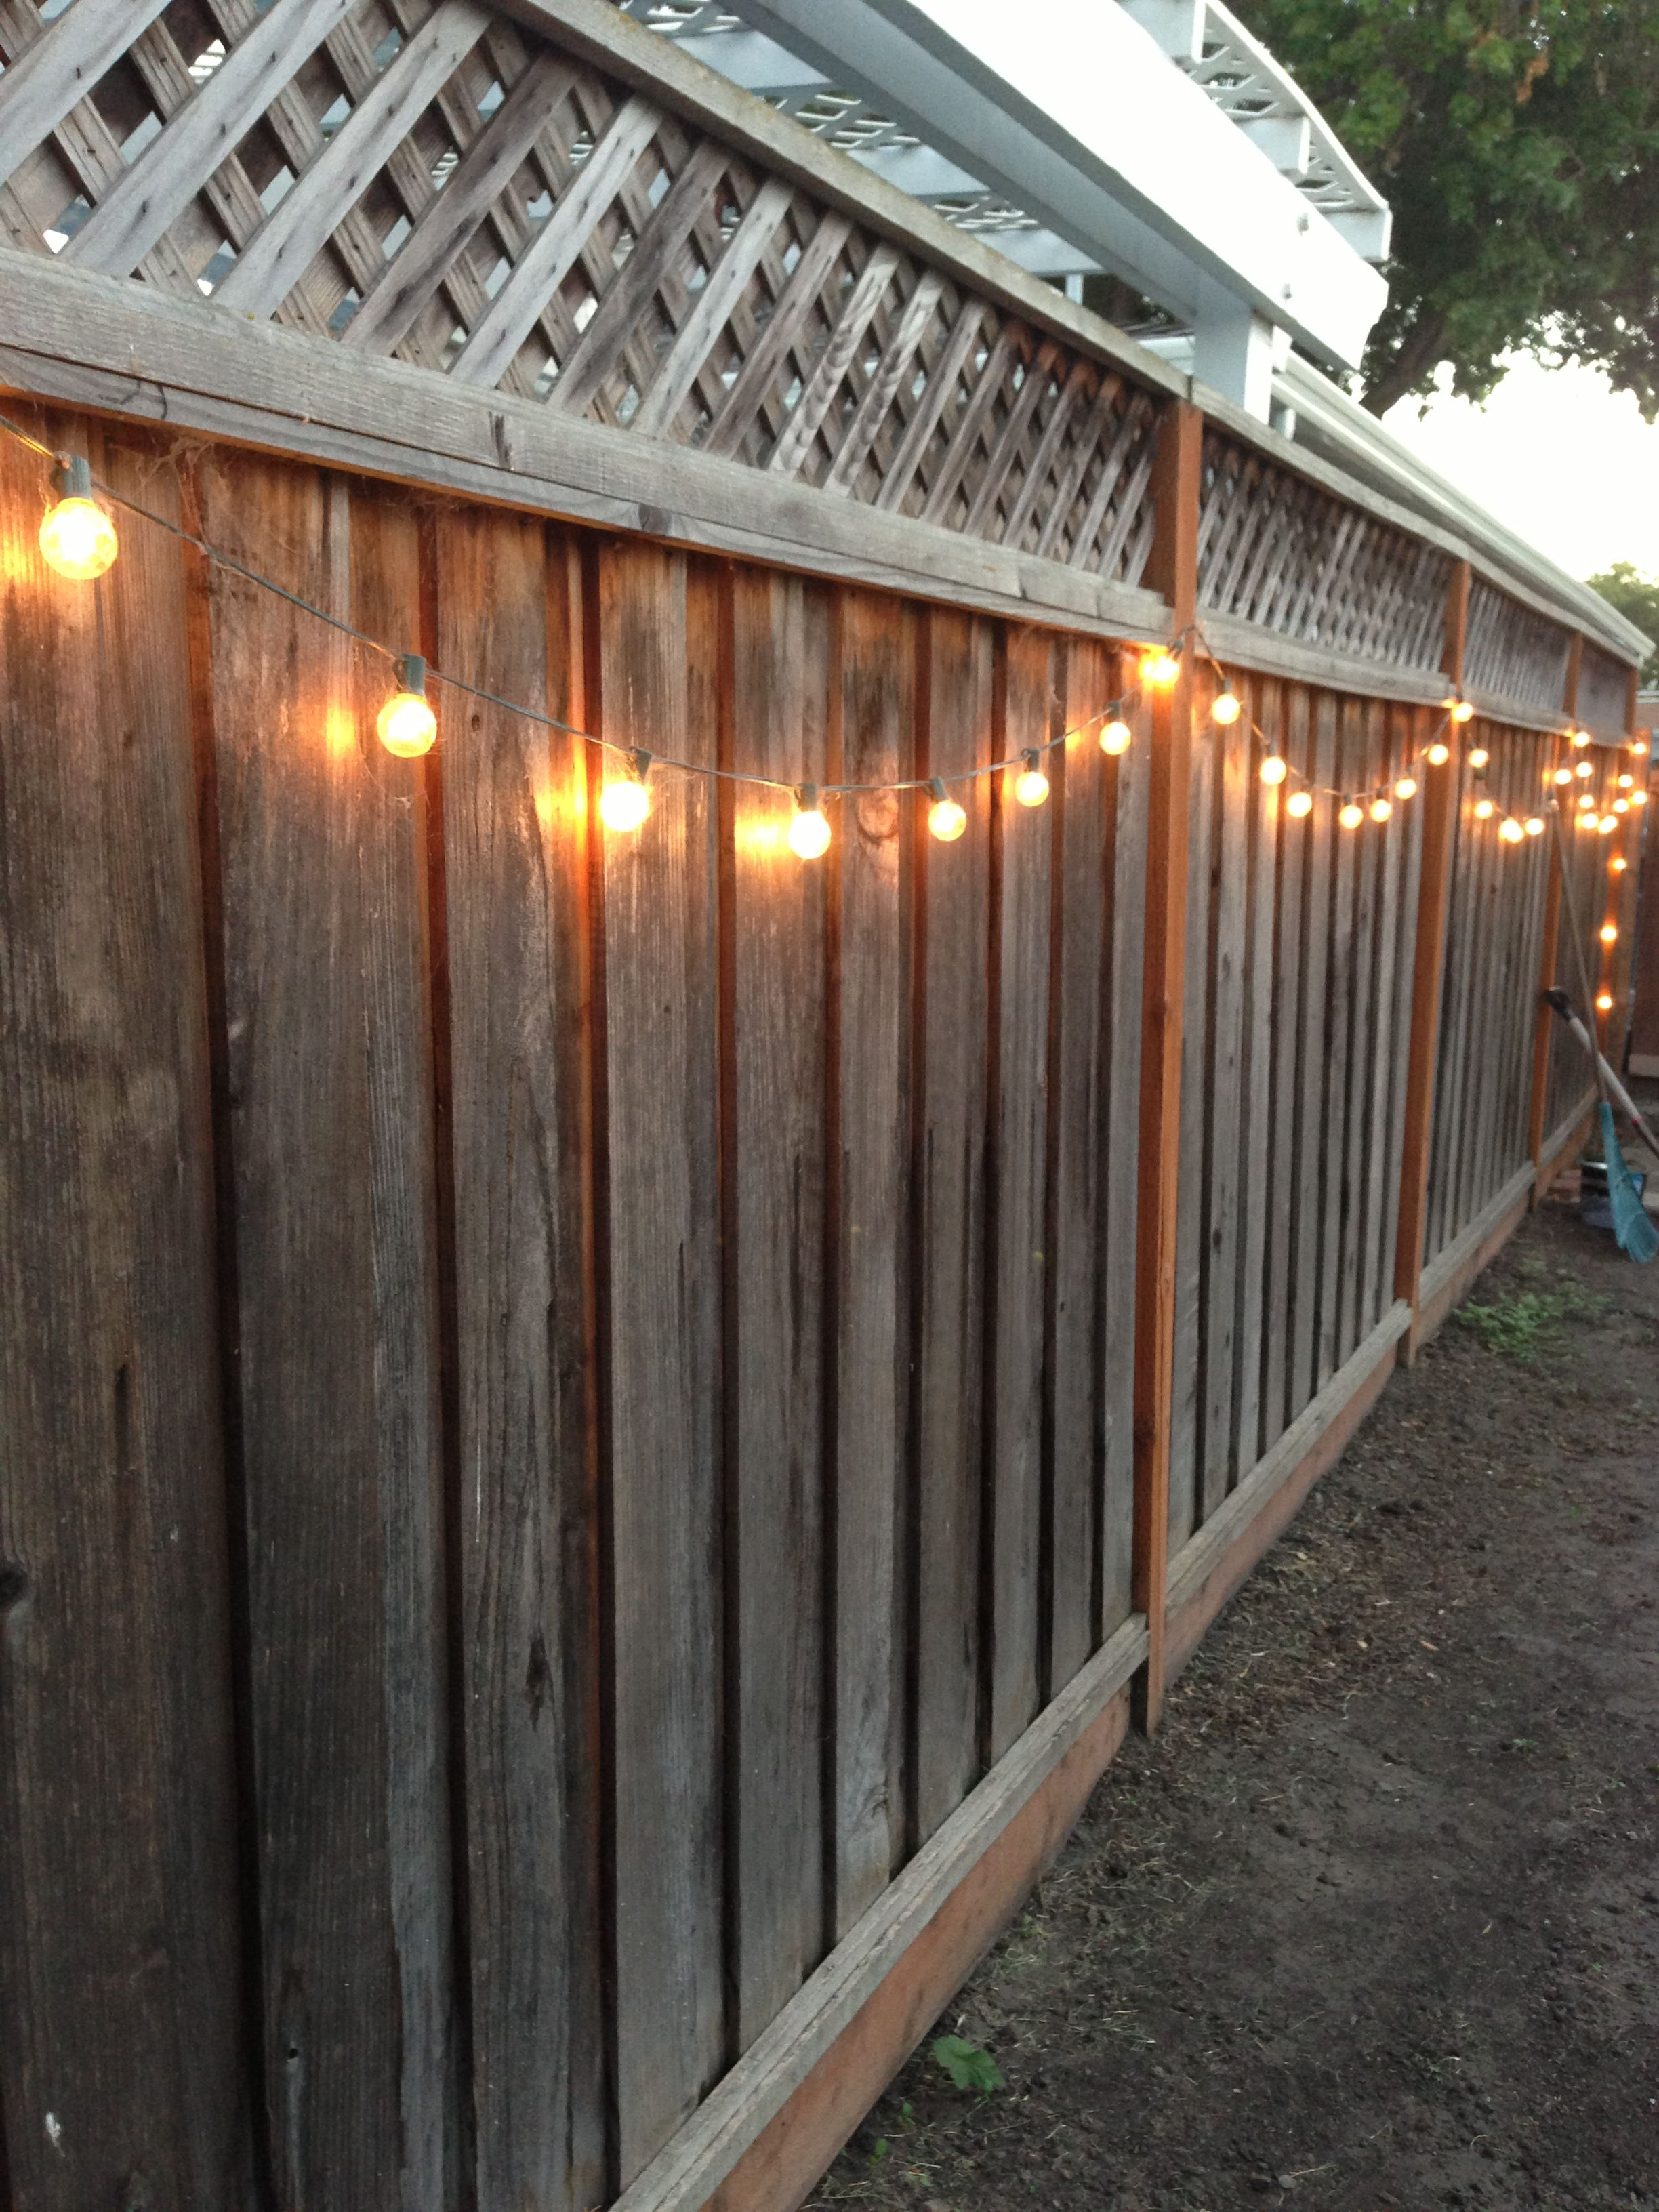 Diy Backyard Lighting Hang Lights On Your Fence Backyard Lighting Backyard Fences Outdoor Patio Lights